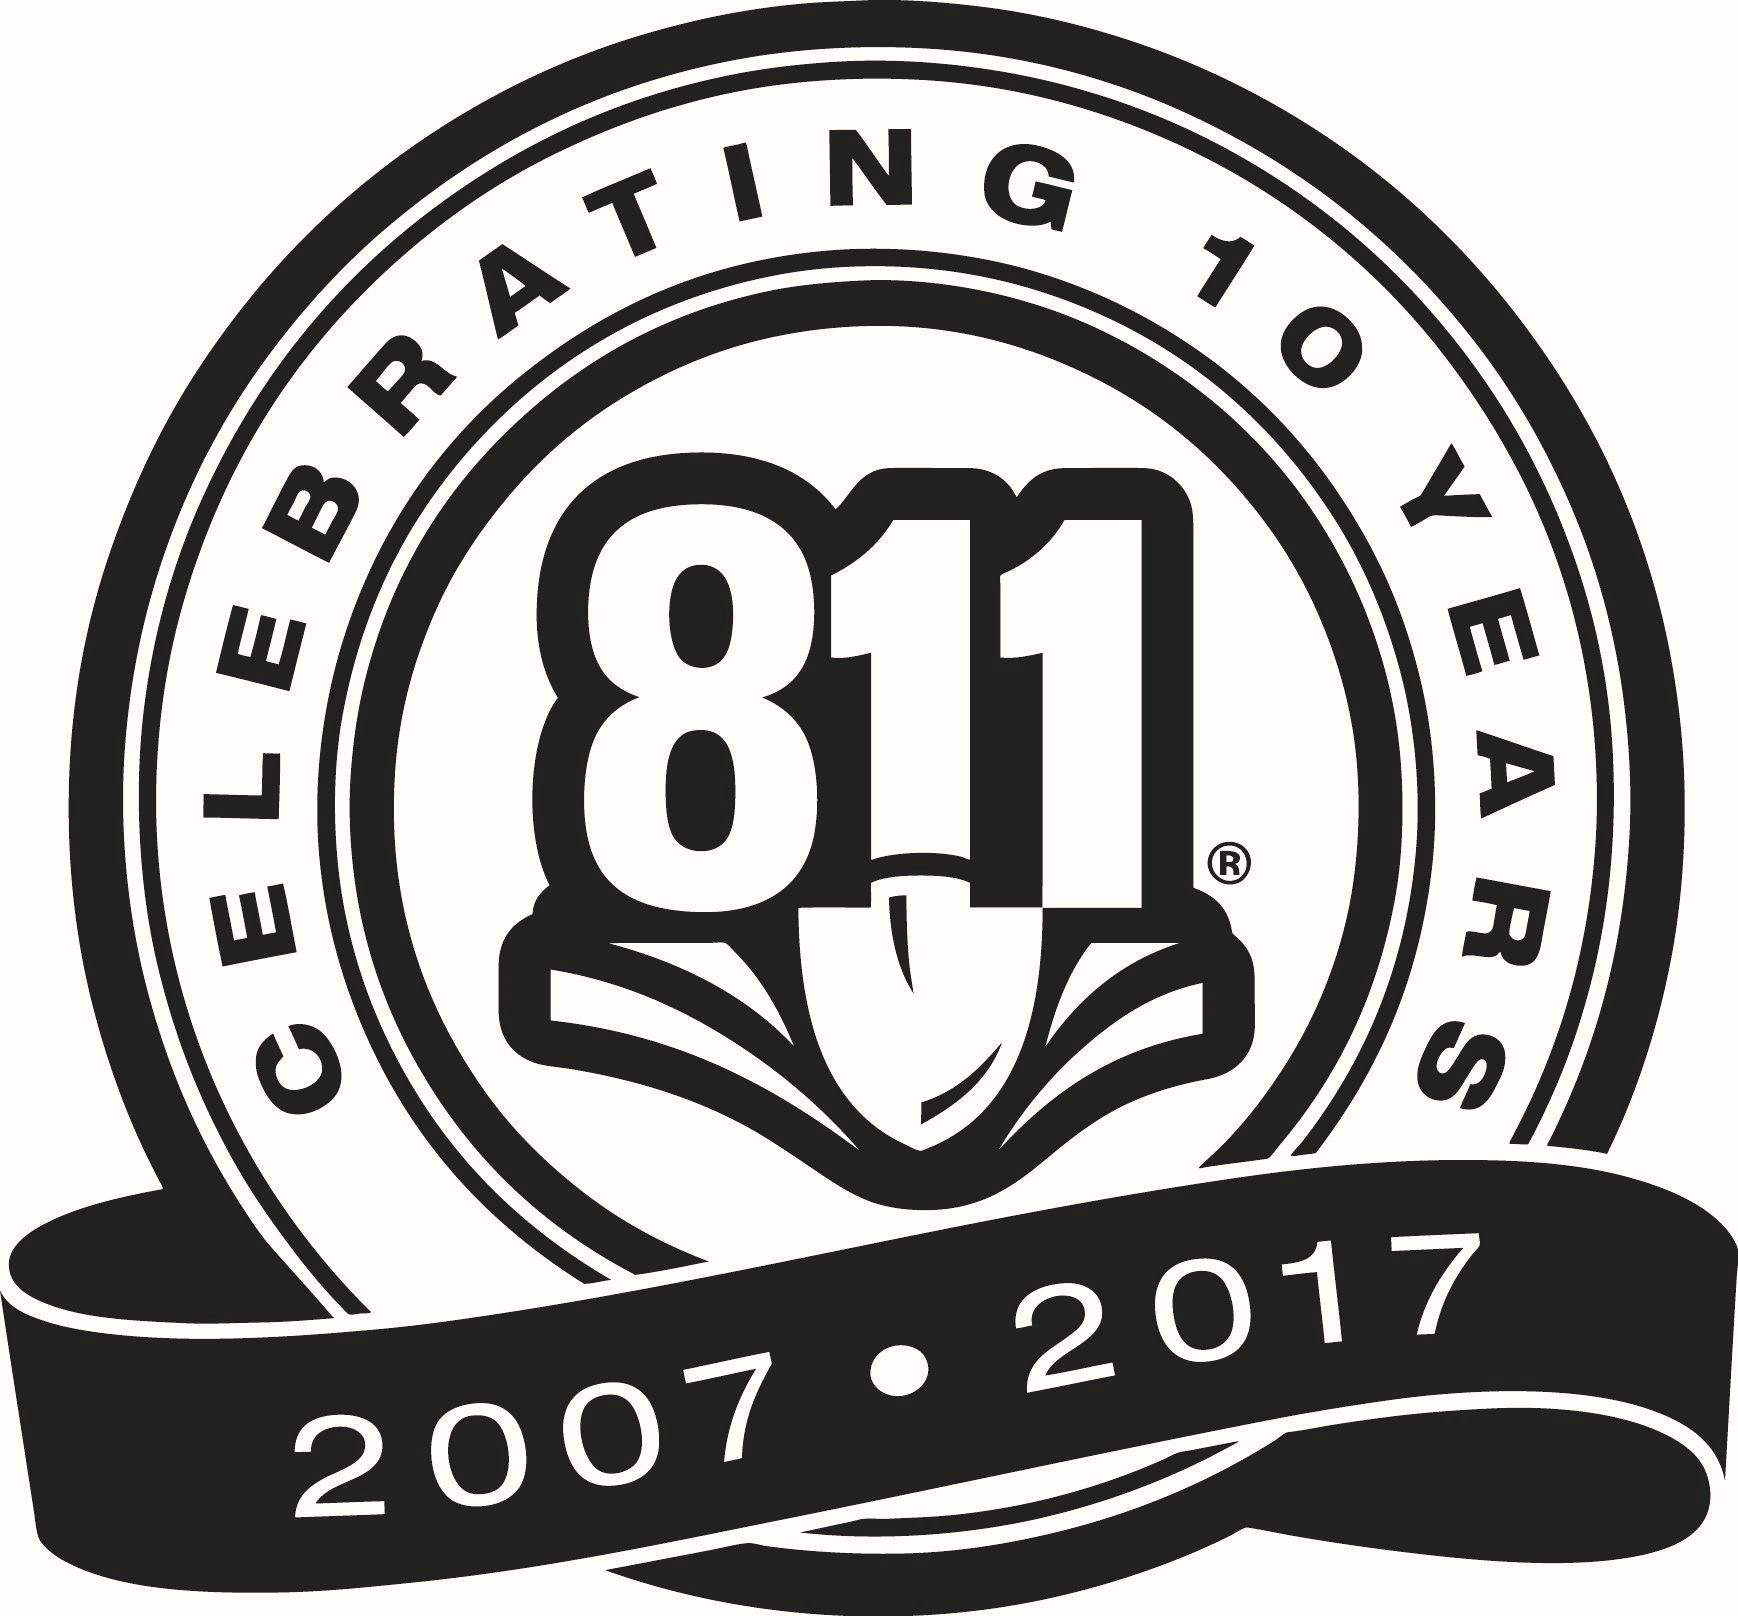 Celerate 10 Years 811 2007 - 2017 black and white logo